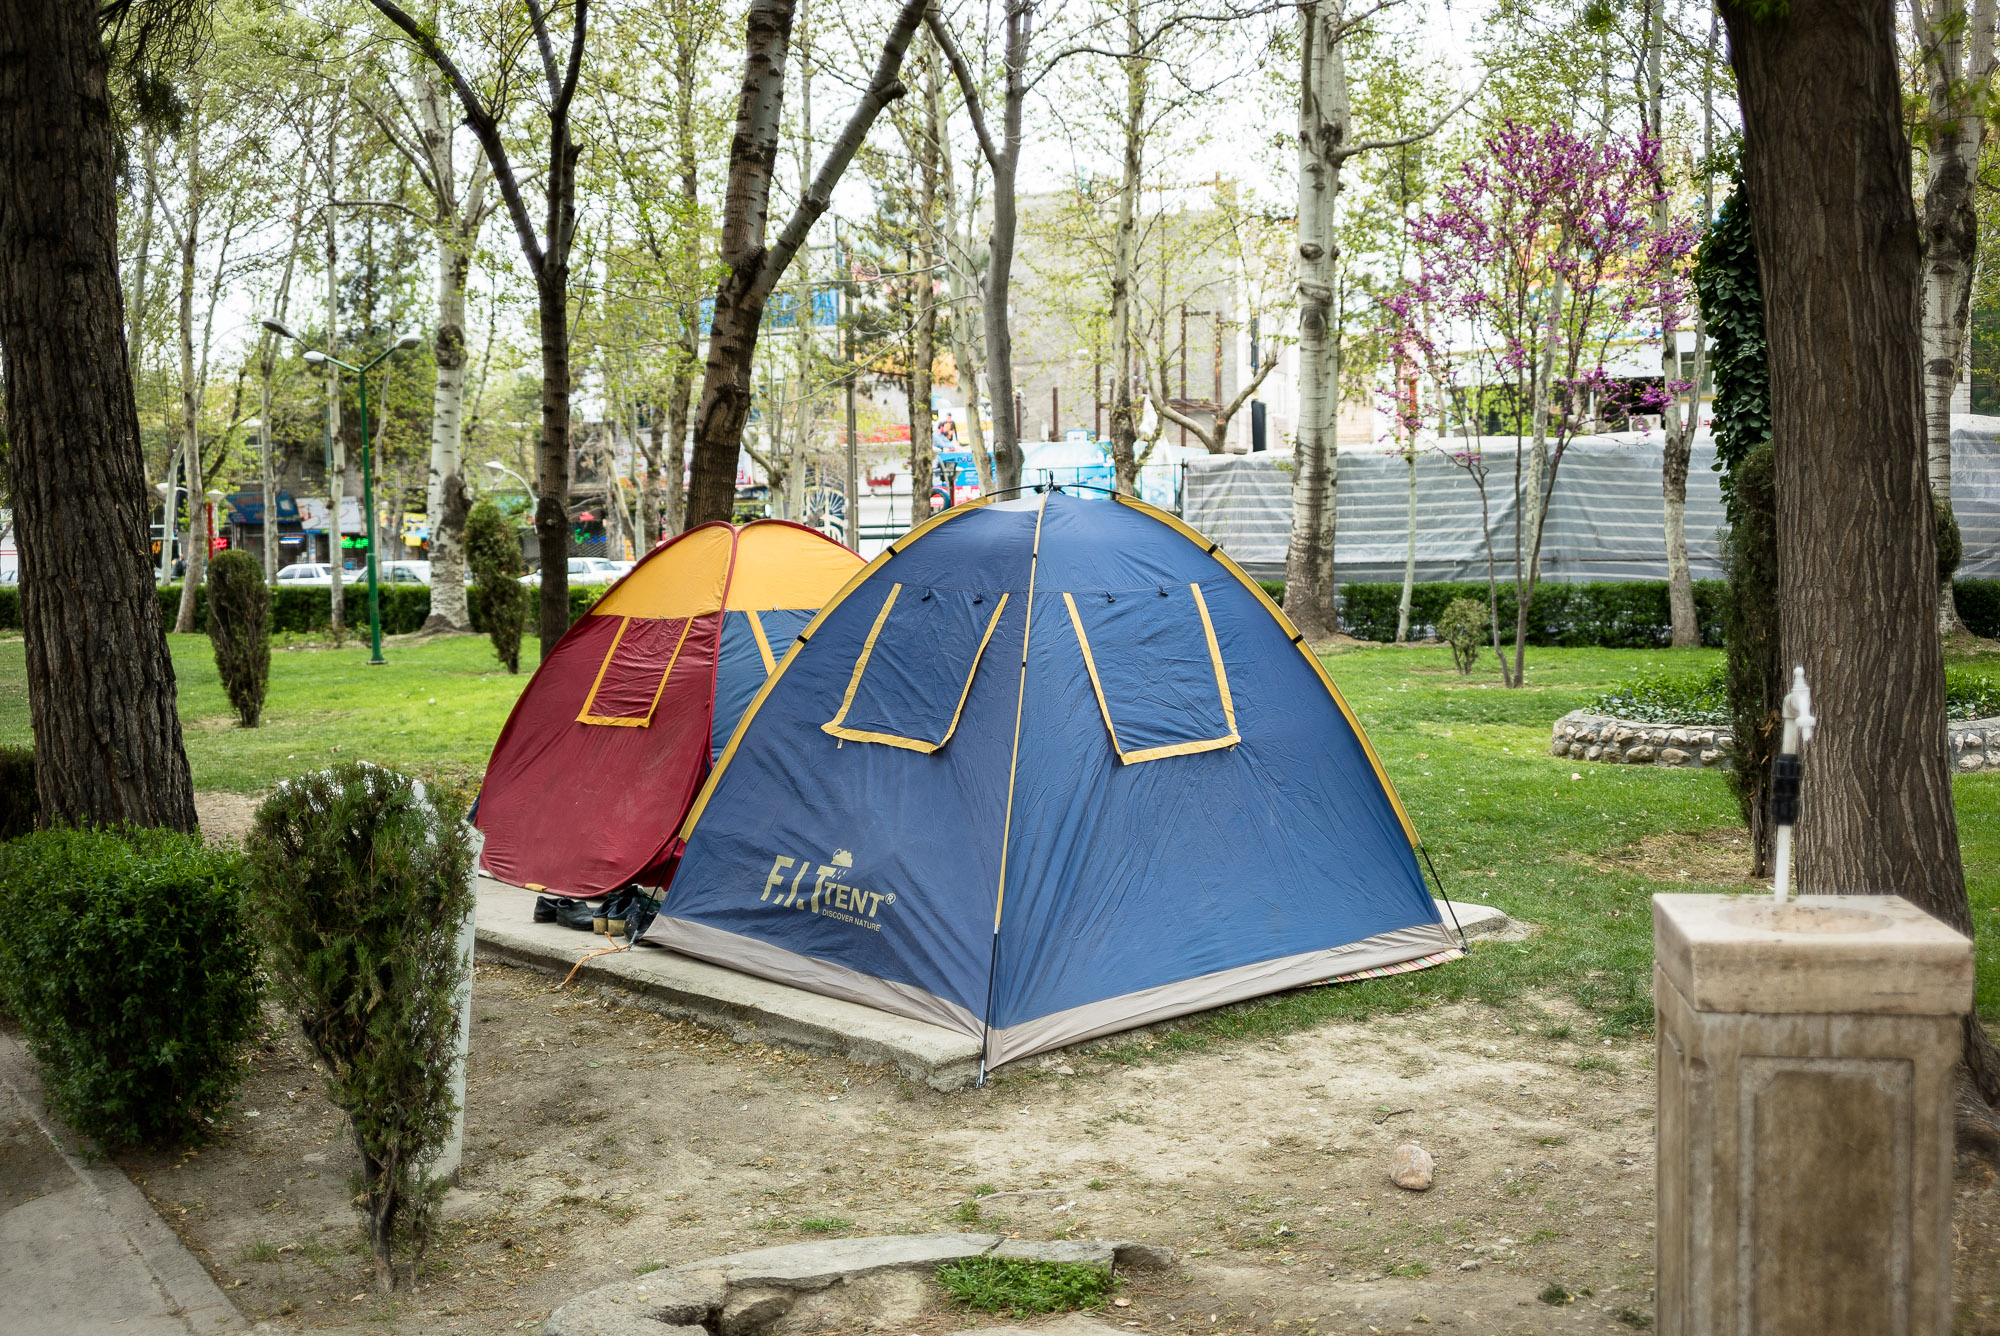 tents in a park